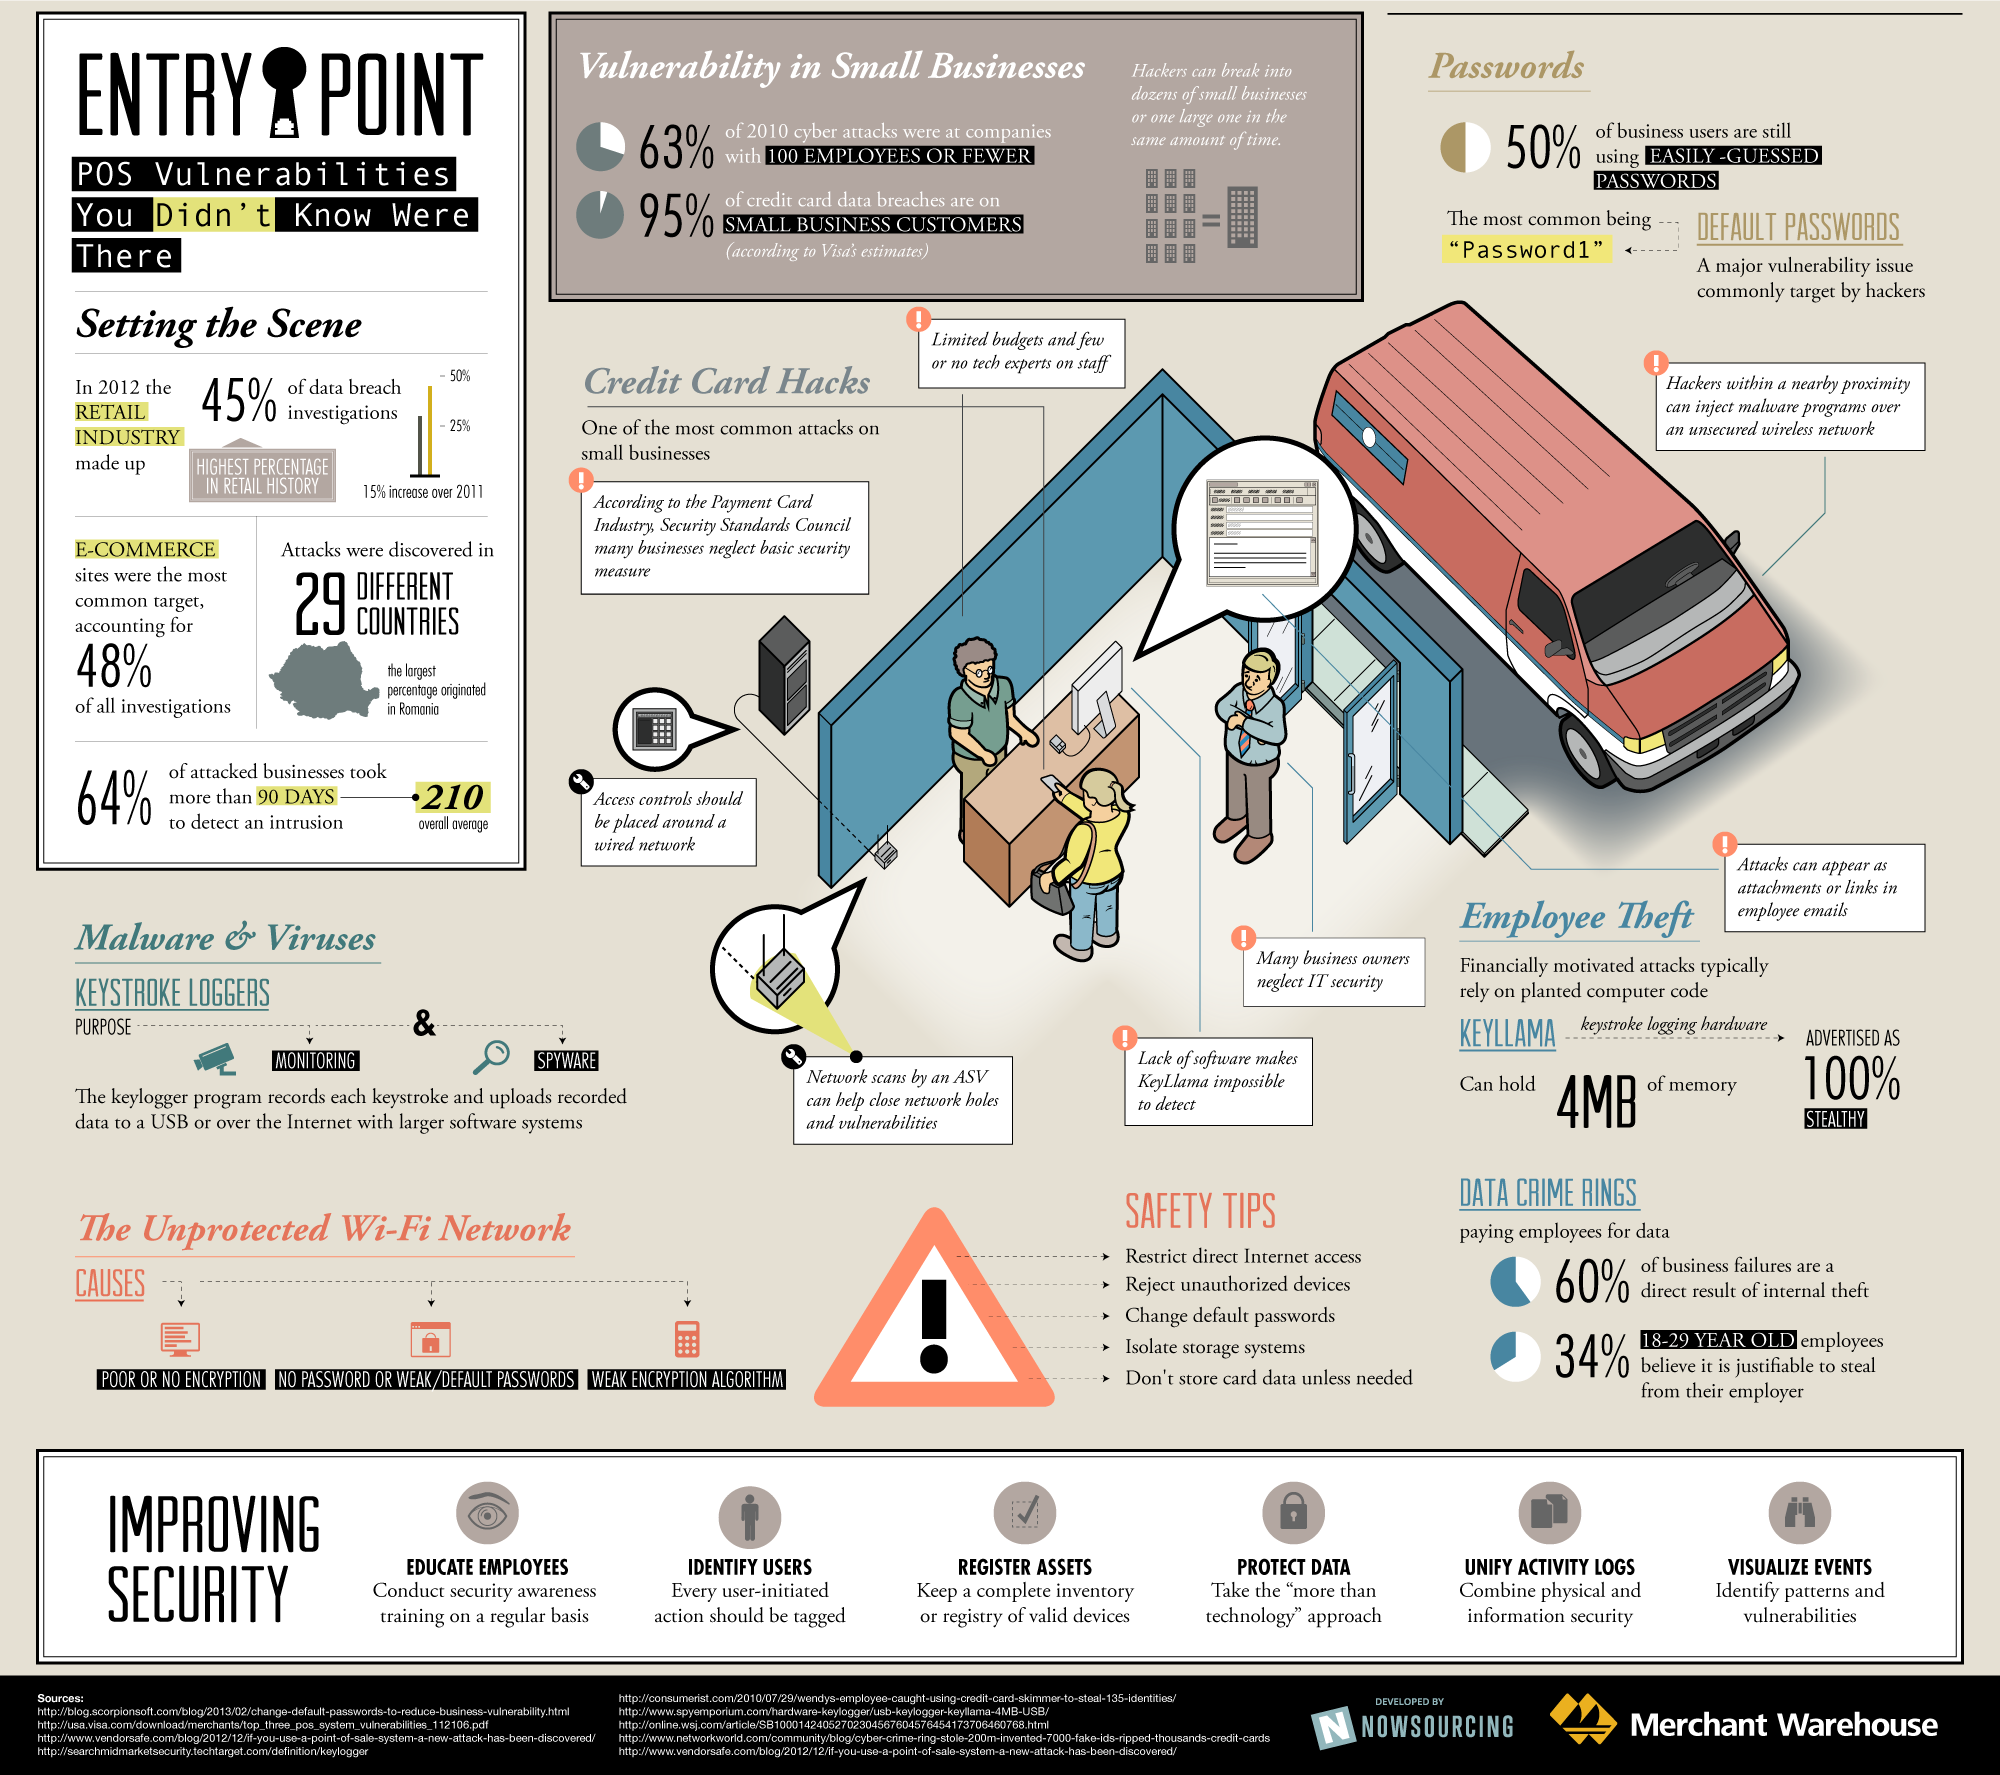 Entry Point: POS Vulnerabilities You Didn't Know Where There